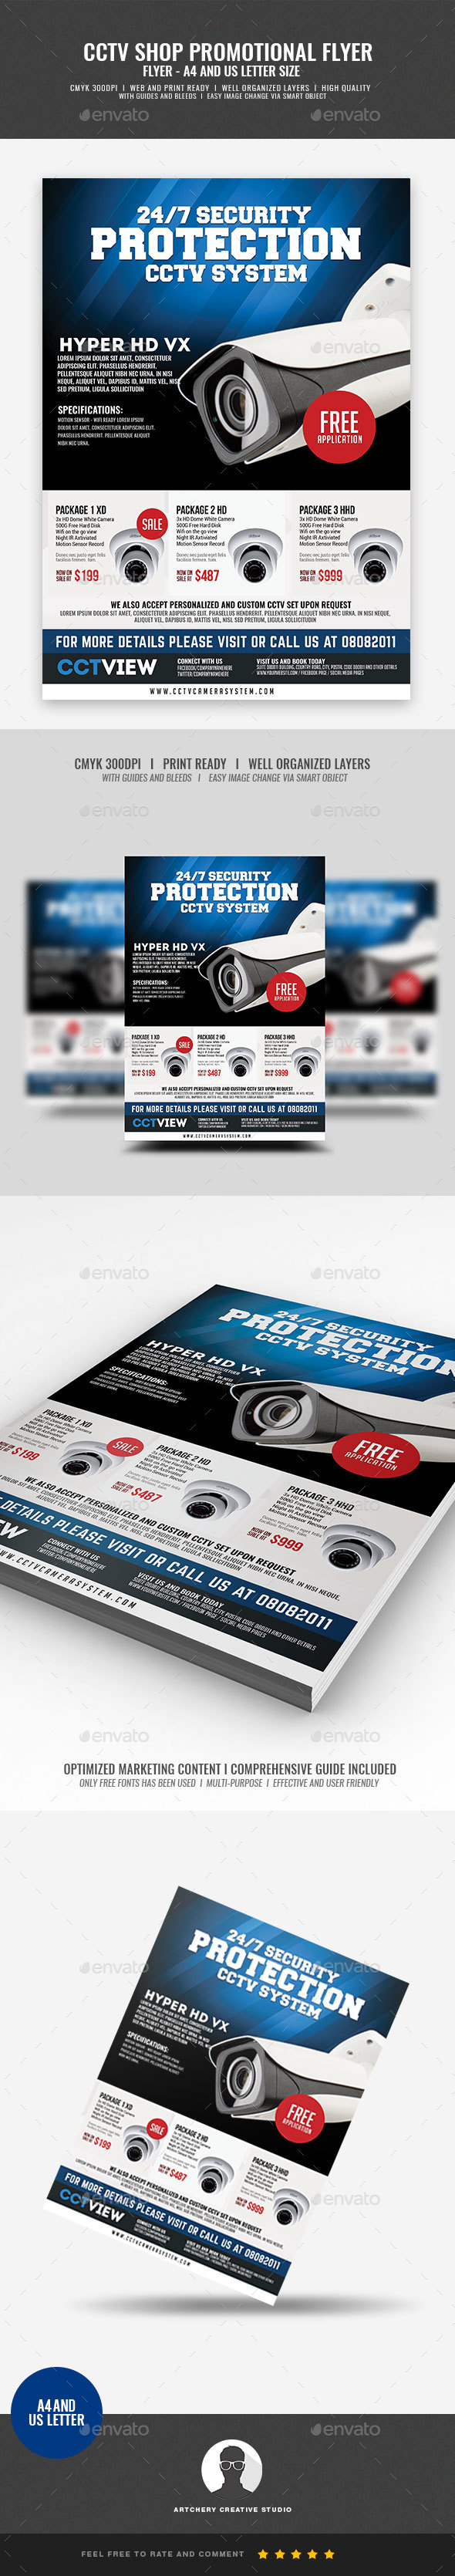 CCTV Package Promotional Flyer - Corporate Flyers